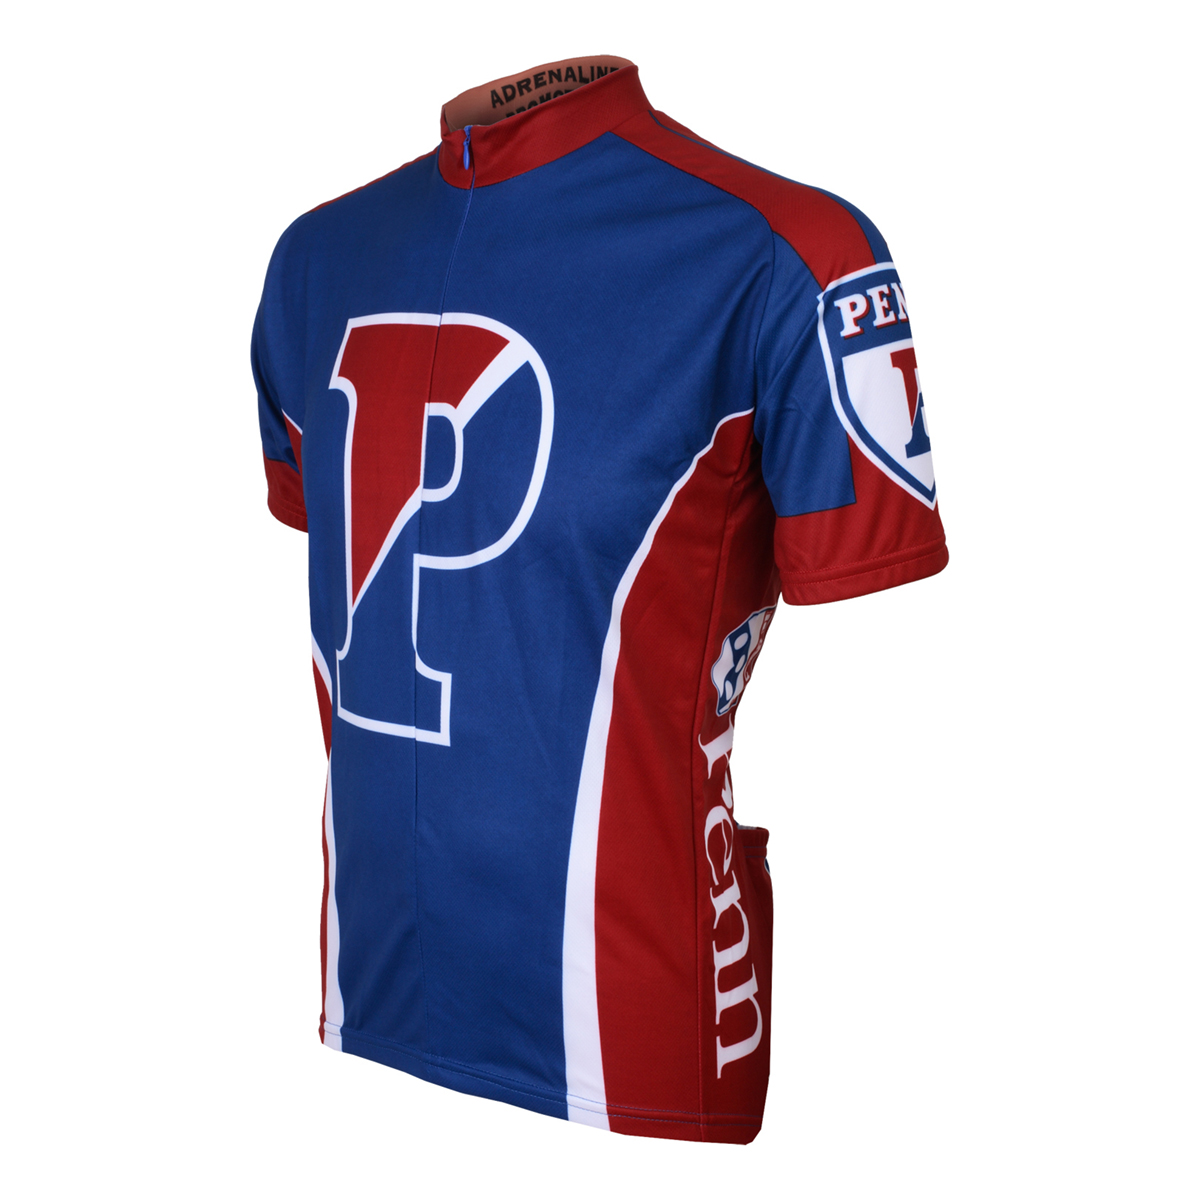 Adrenaline Promotions University of Pennsylvania Cycling Jersey